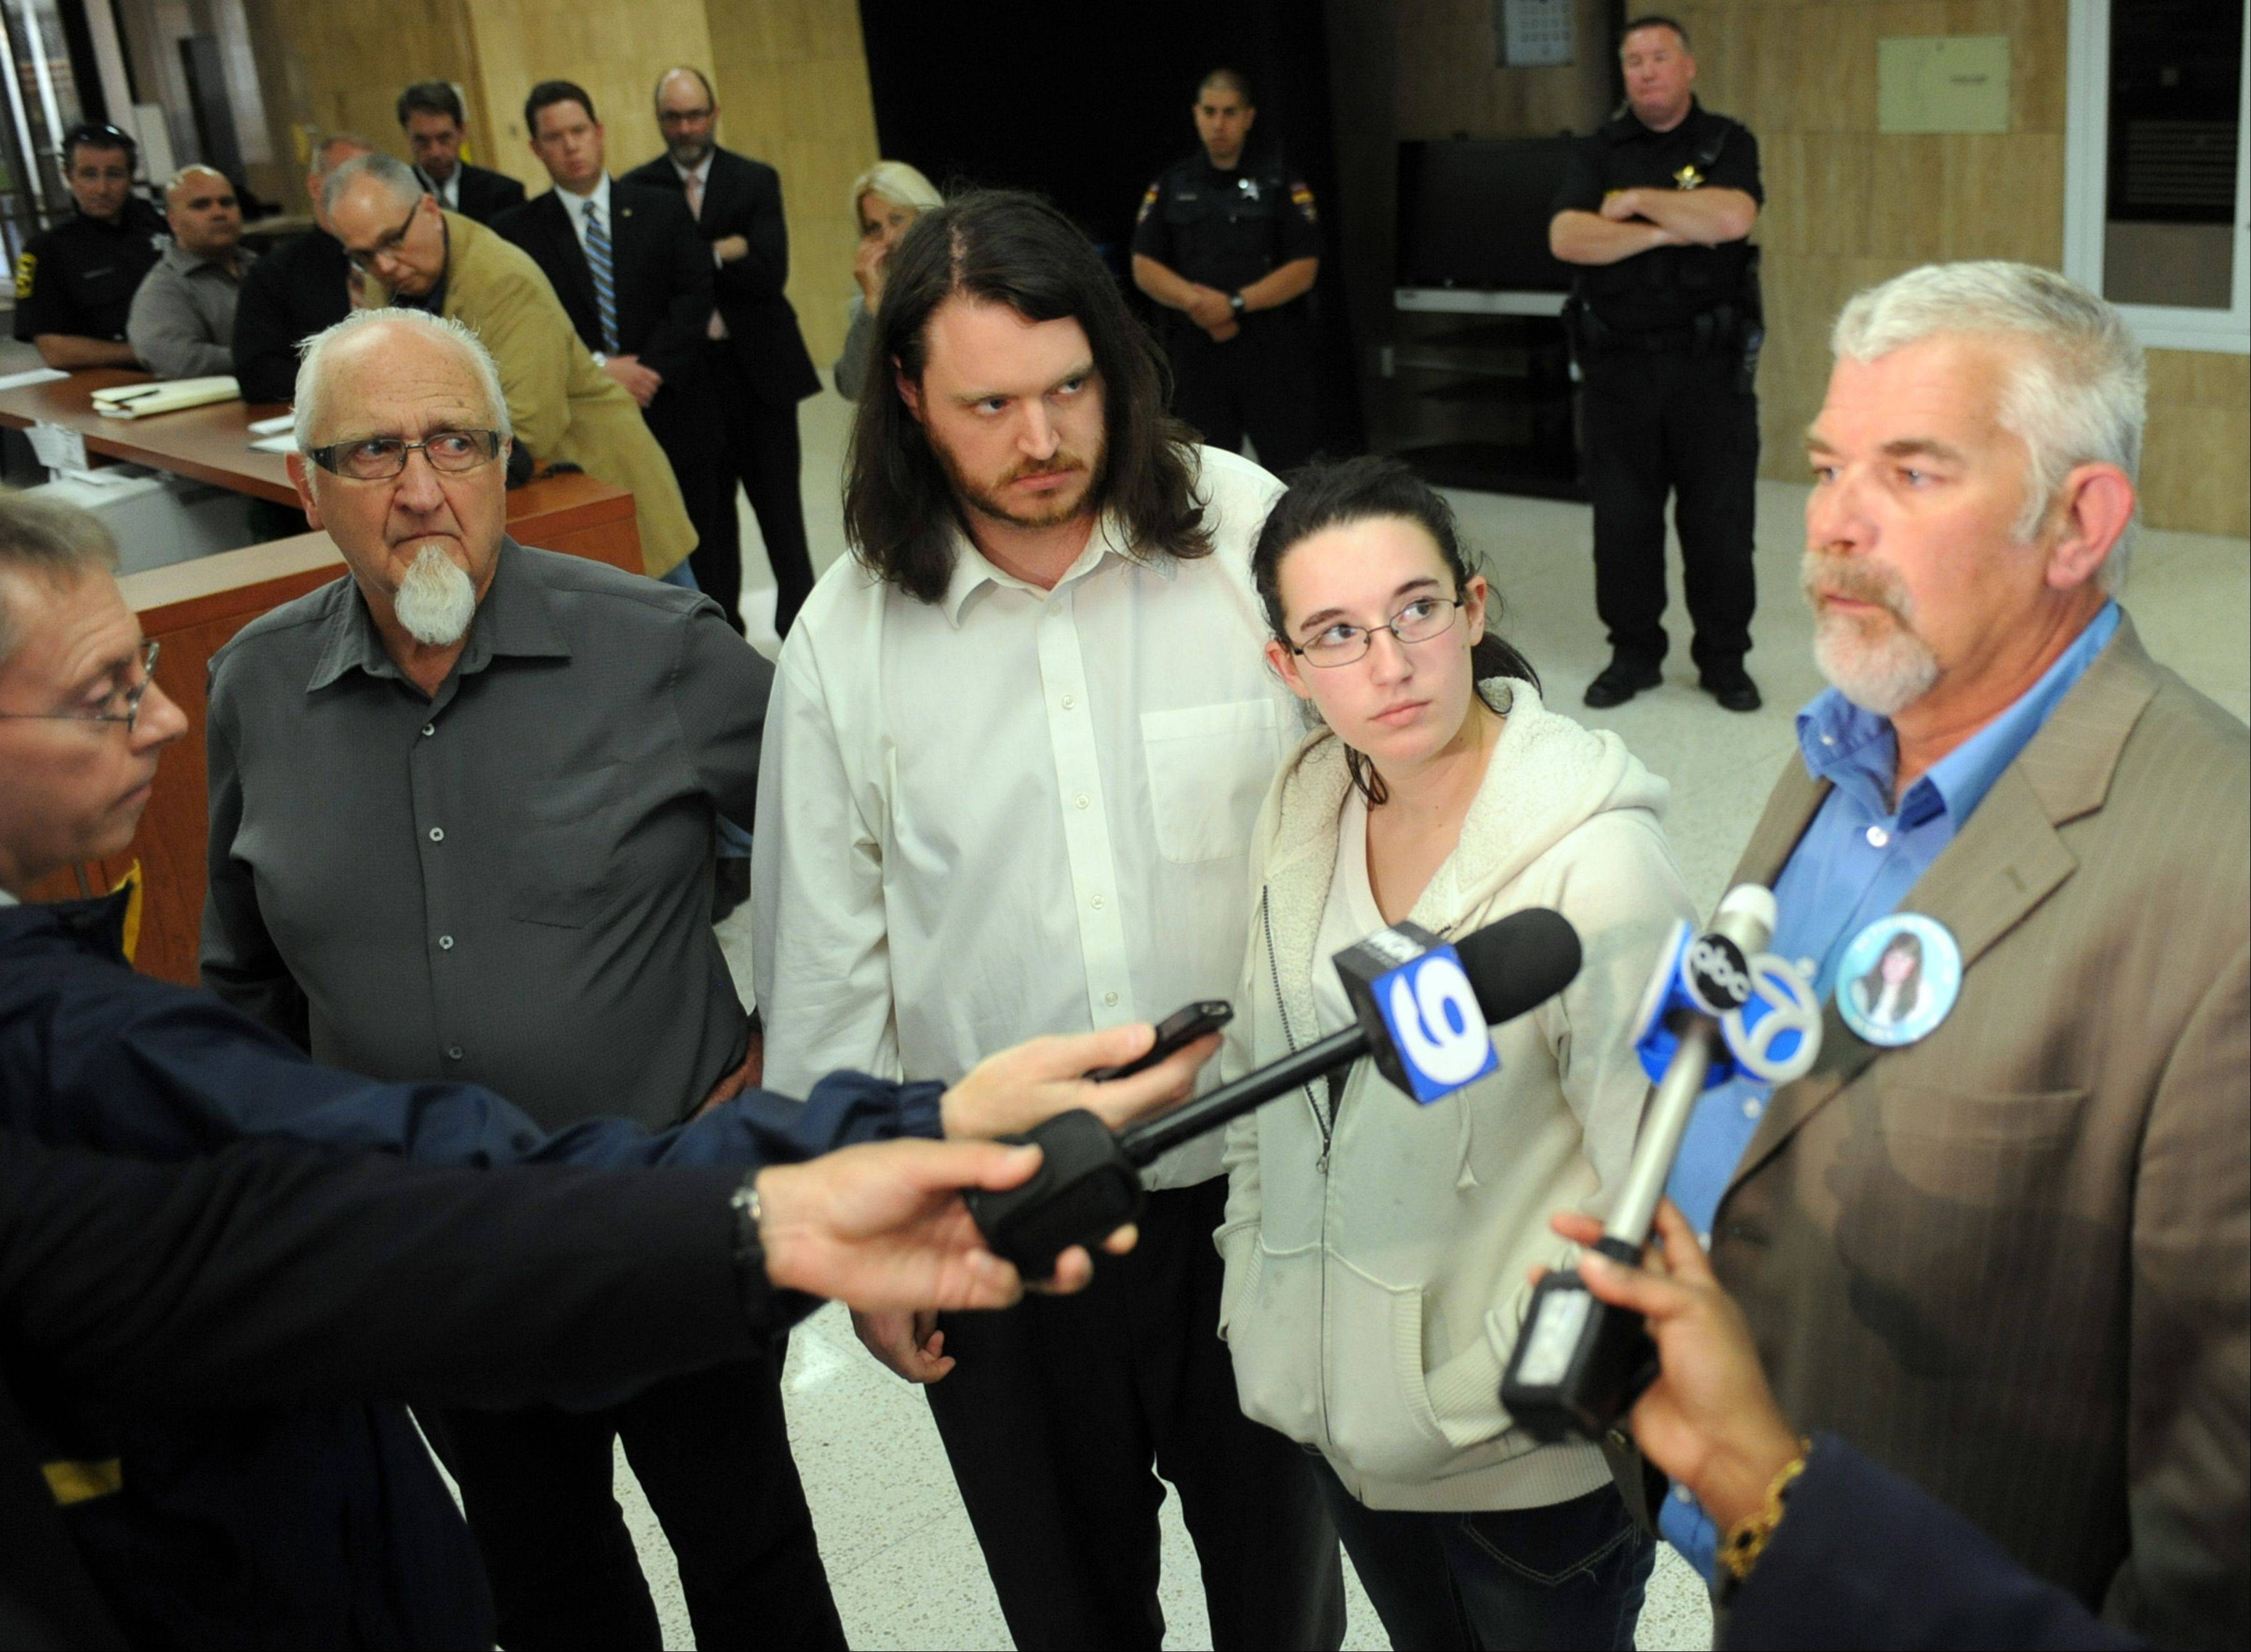 Ken Hutchison talks about the first-degree murder guilty verdict during a news conference in the lobby of the Lake County Courthouse in Waukegan with Richard Dean (left), Richard Nothnagel and Rebeccah Hutchison.